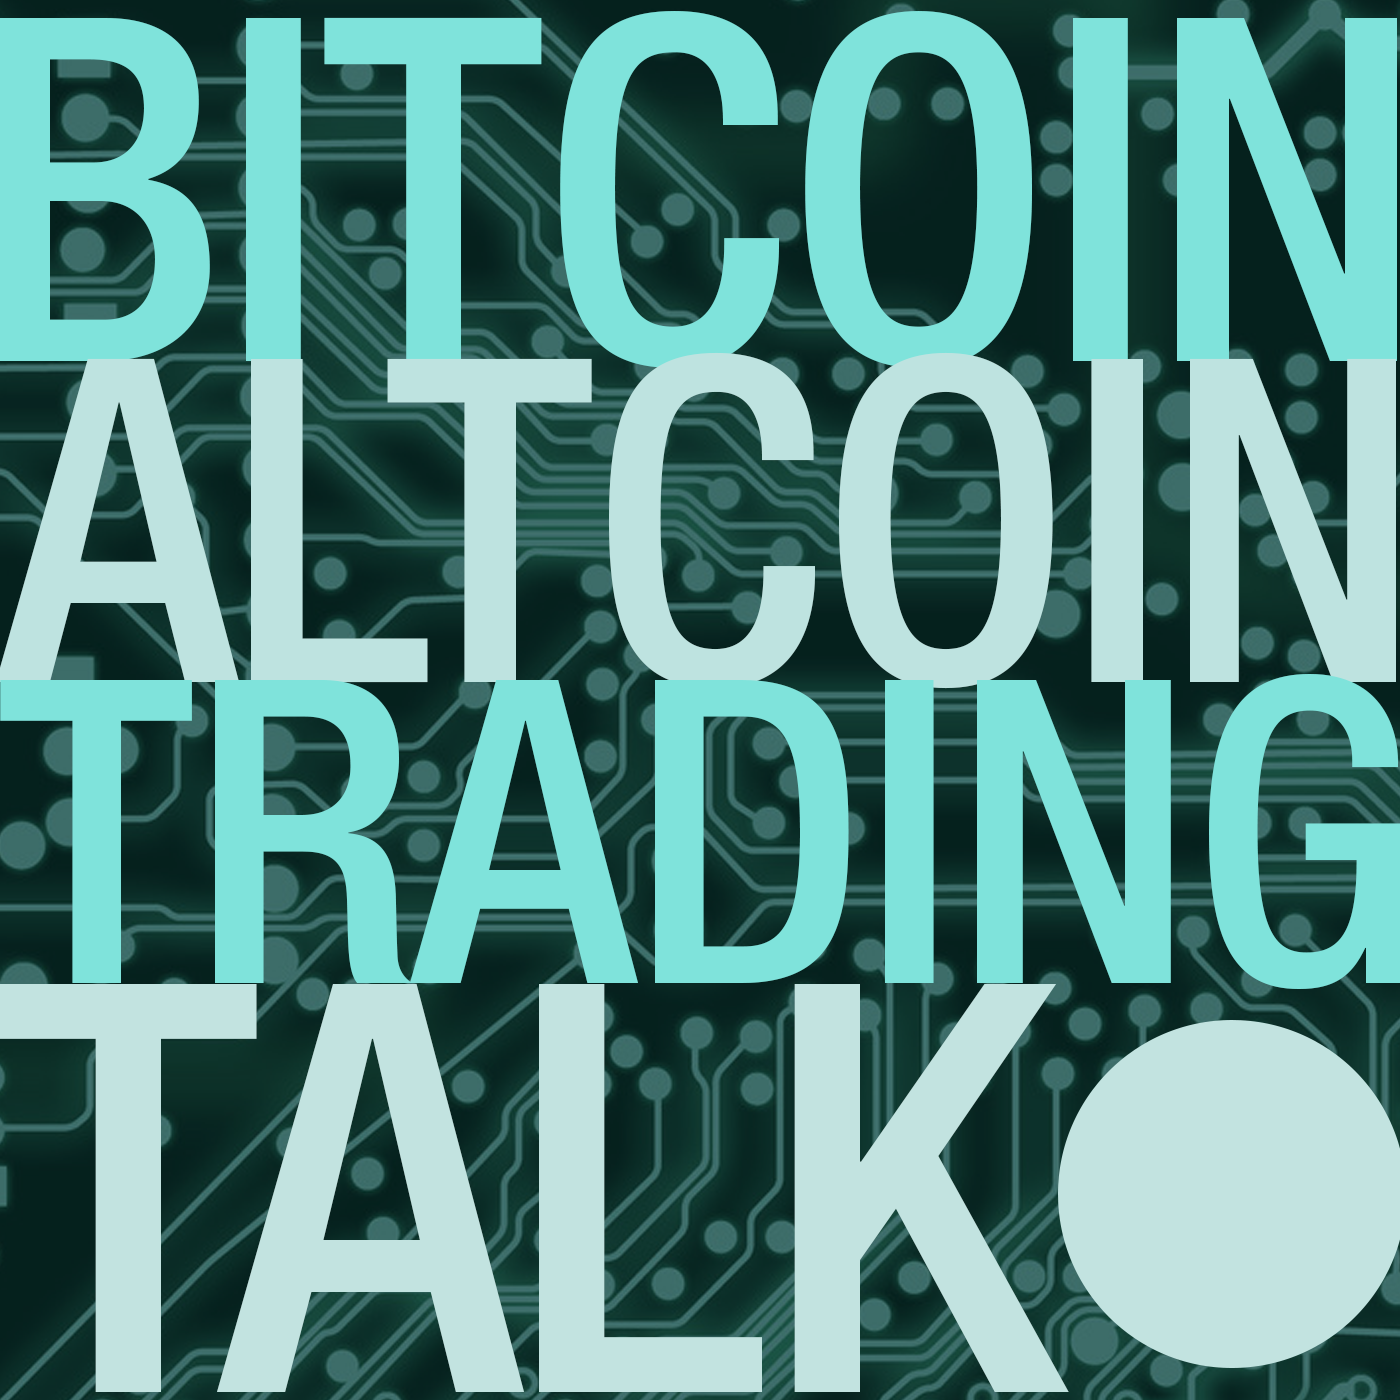 Bitcoin & Altcoin Trading Talk 07 – Those Crazy Alts | Bitcoin